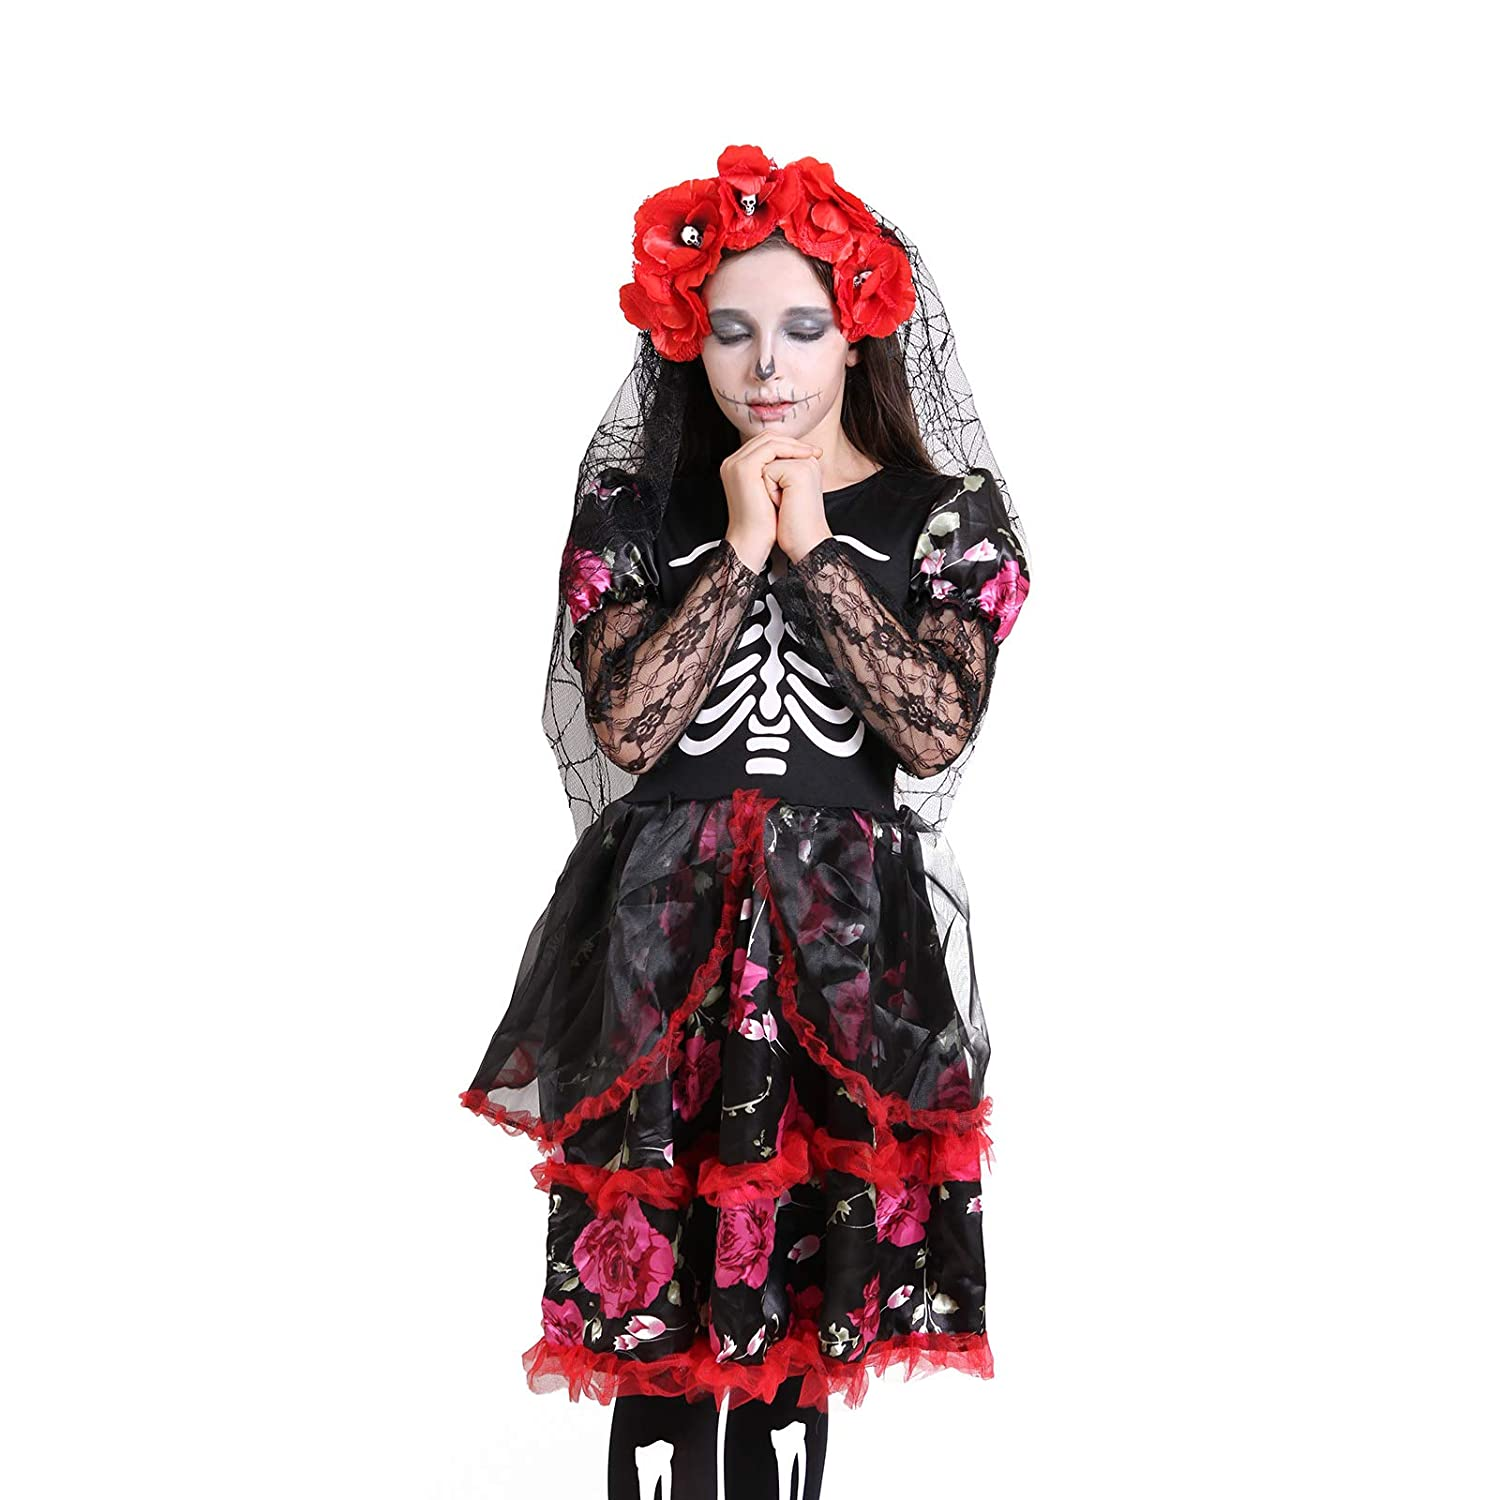 ea1a54bef7 Amazon.com  Girls Skeleton Costume Kids Halloween Zombie Bride Dress  Cosplay  Clothing